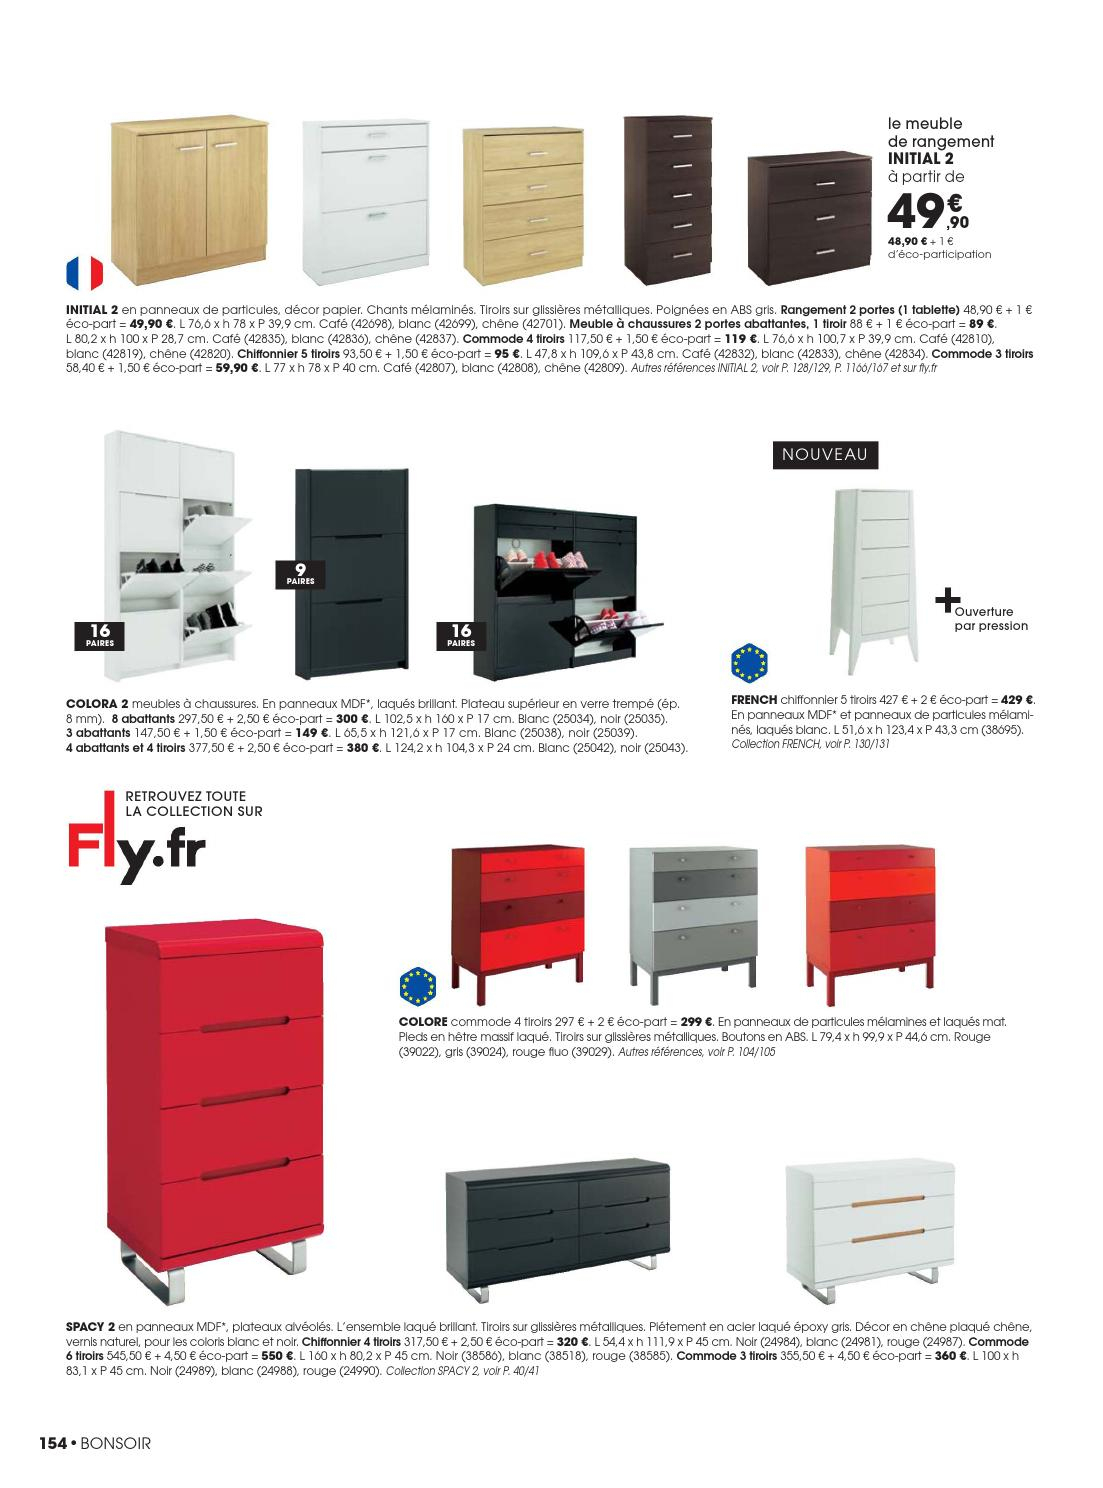 Catalogue Fly - Collection 2013/2014 By Joe Monroe - Issuu destiné Meuble À Chaussures Fly